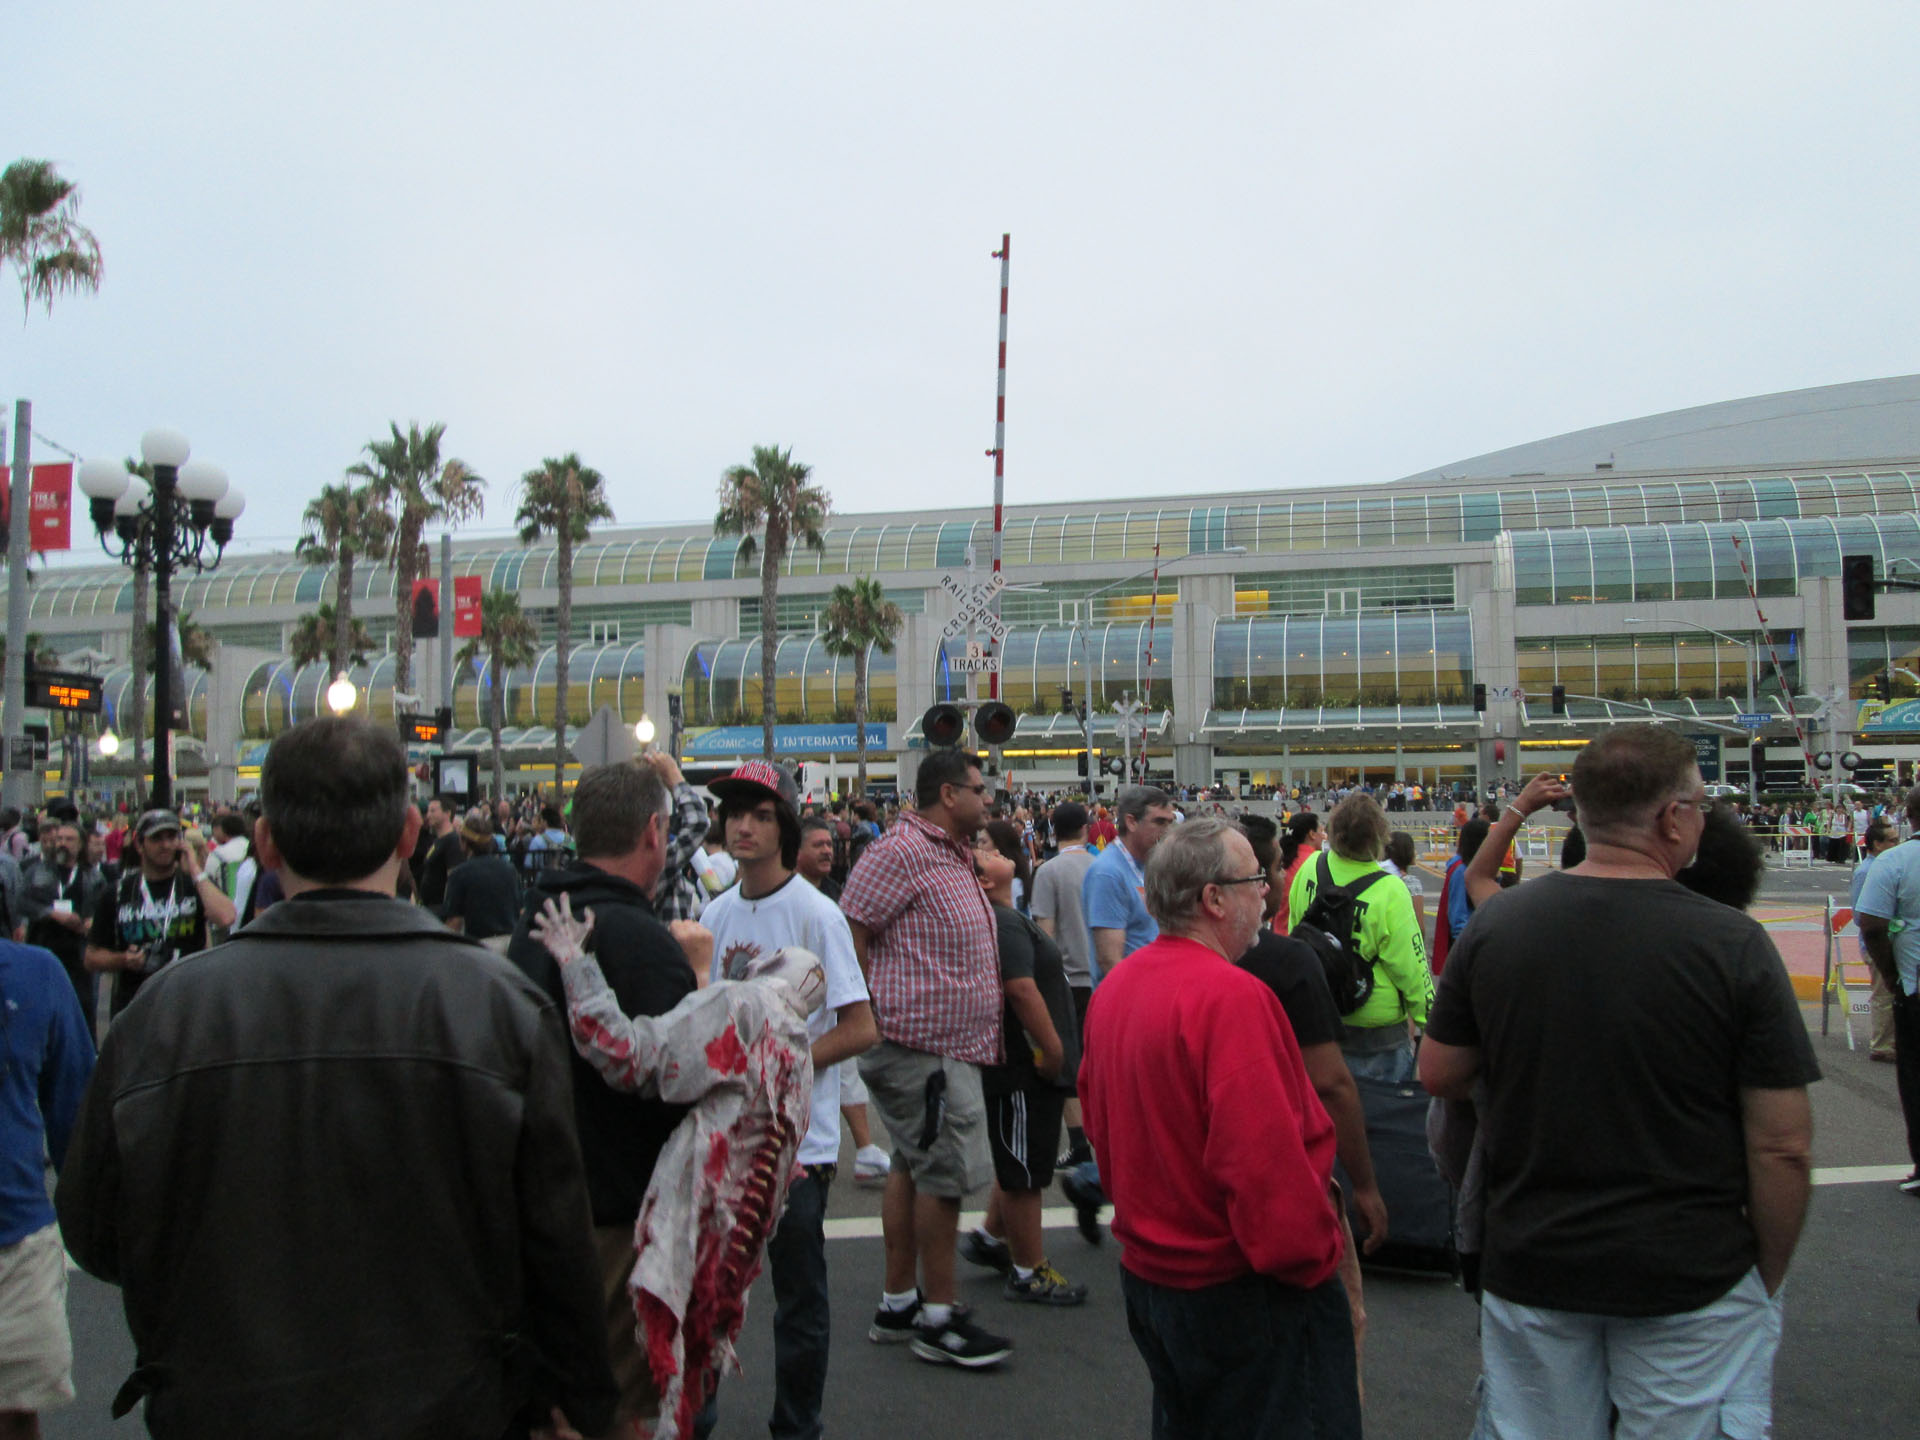 People outside the convention center.